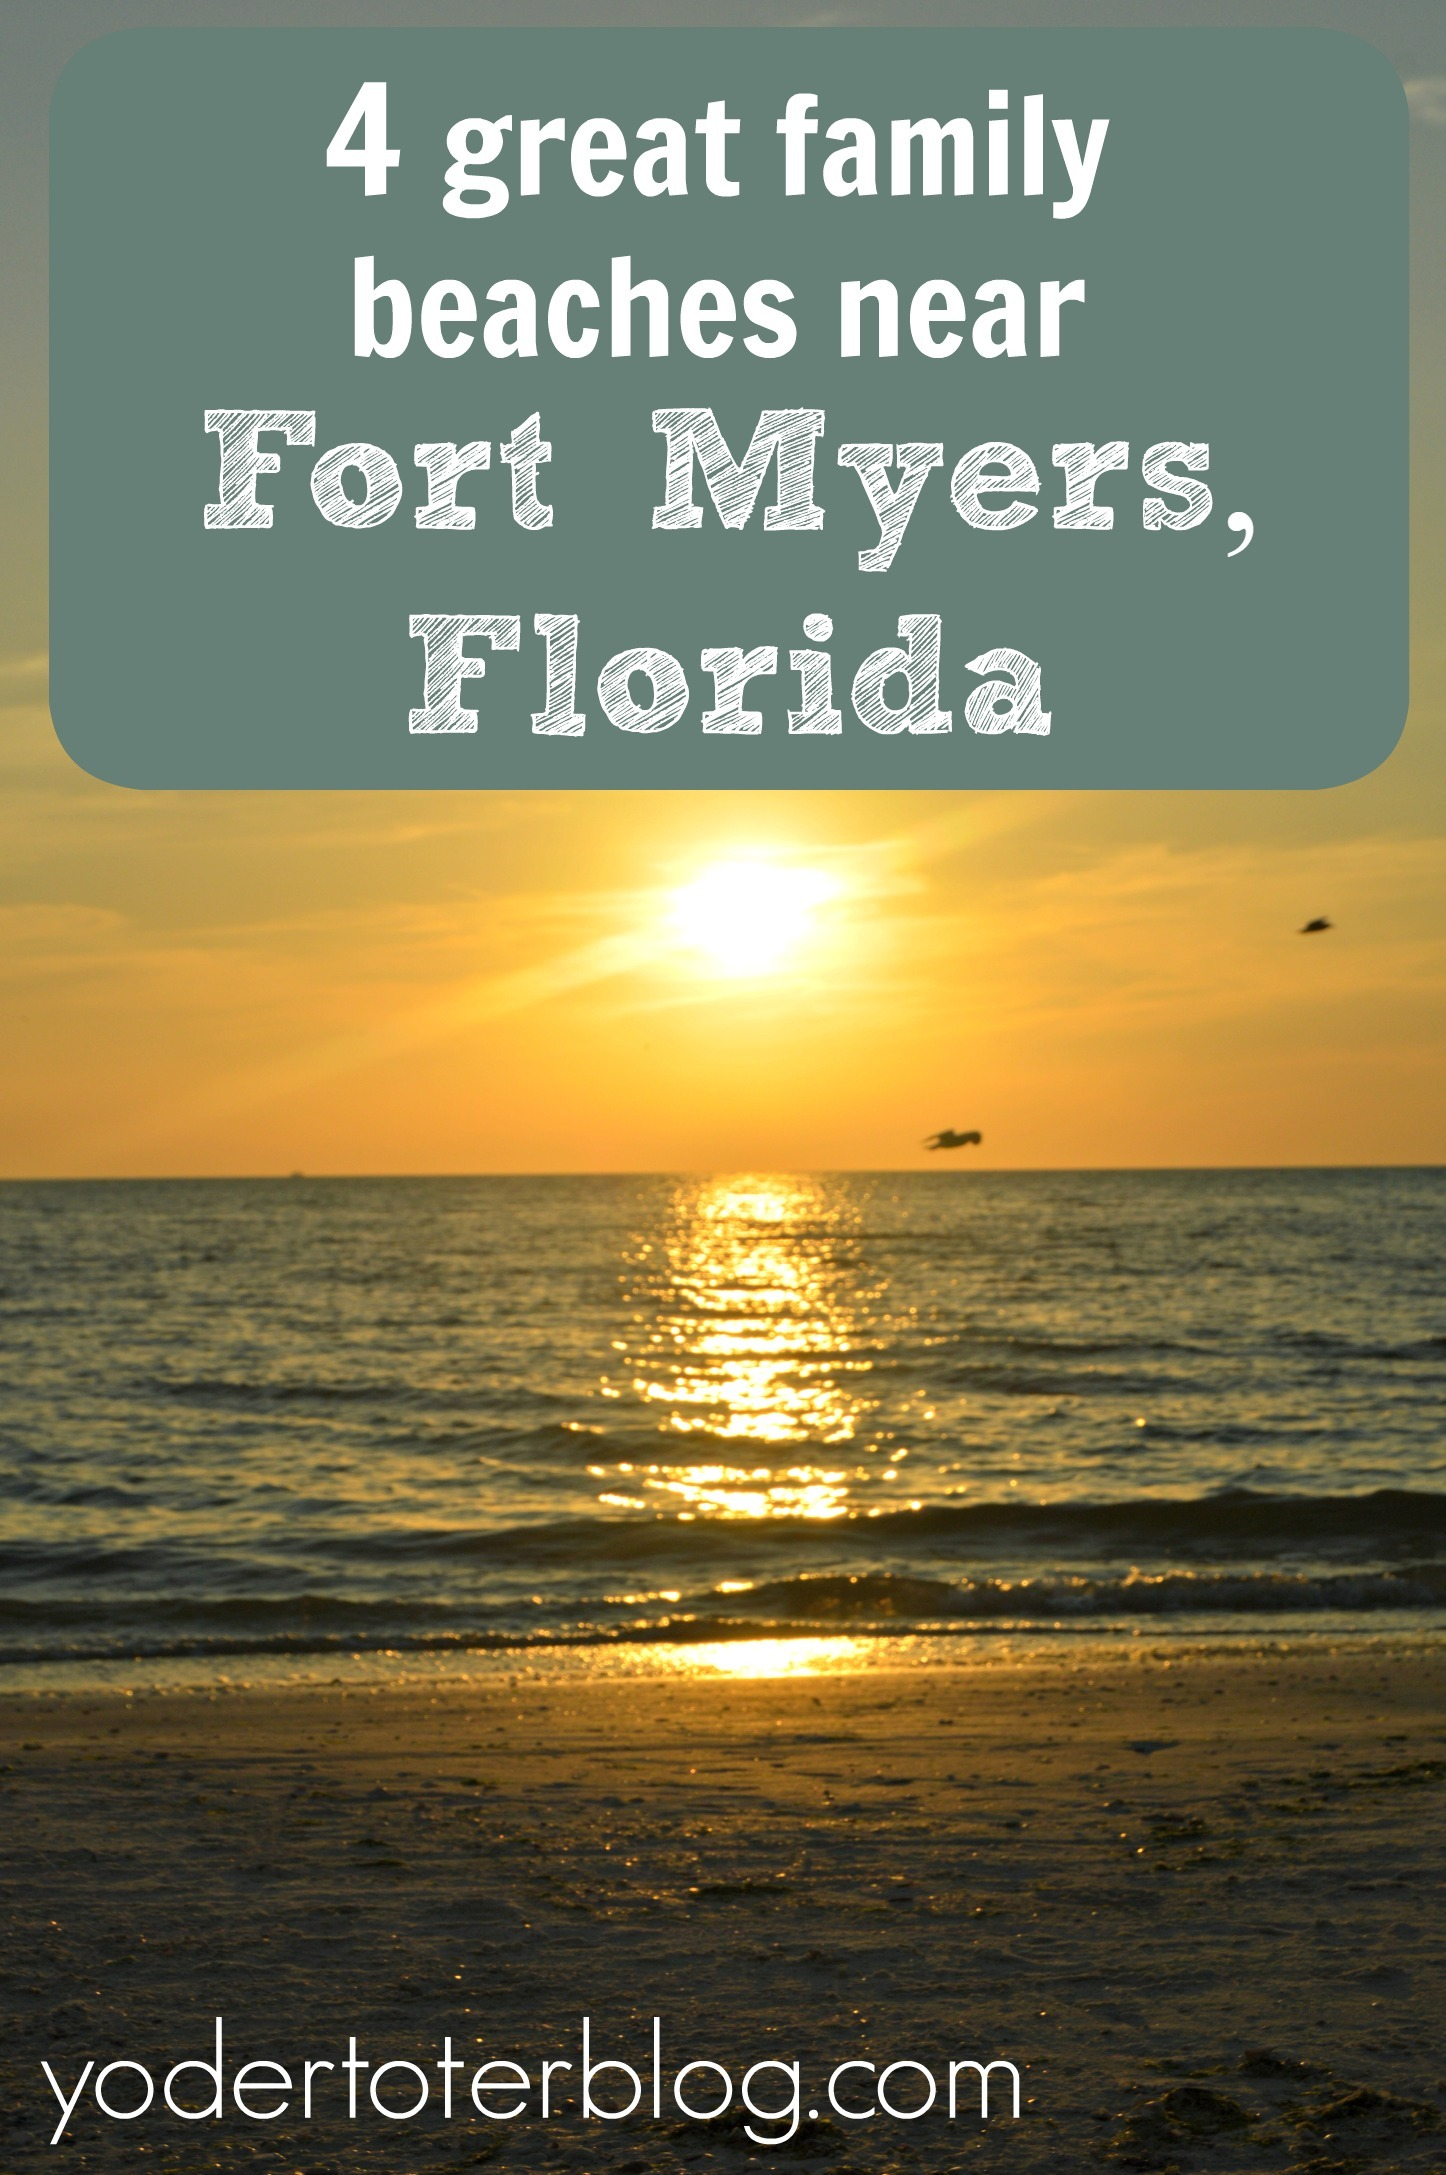 4 great family beaches near Fort Myers, Florida